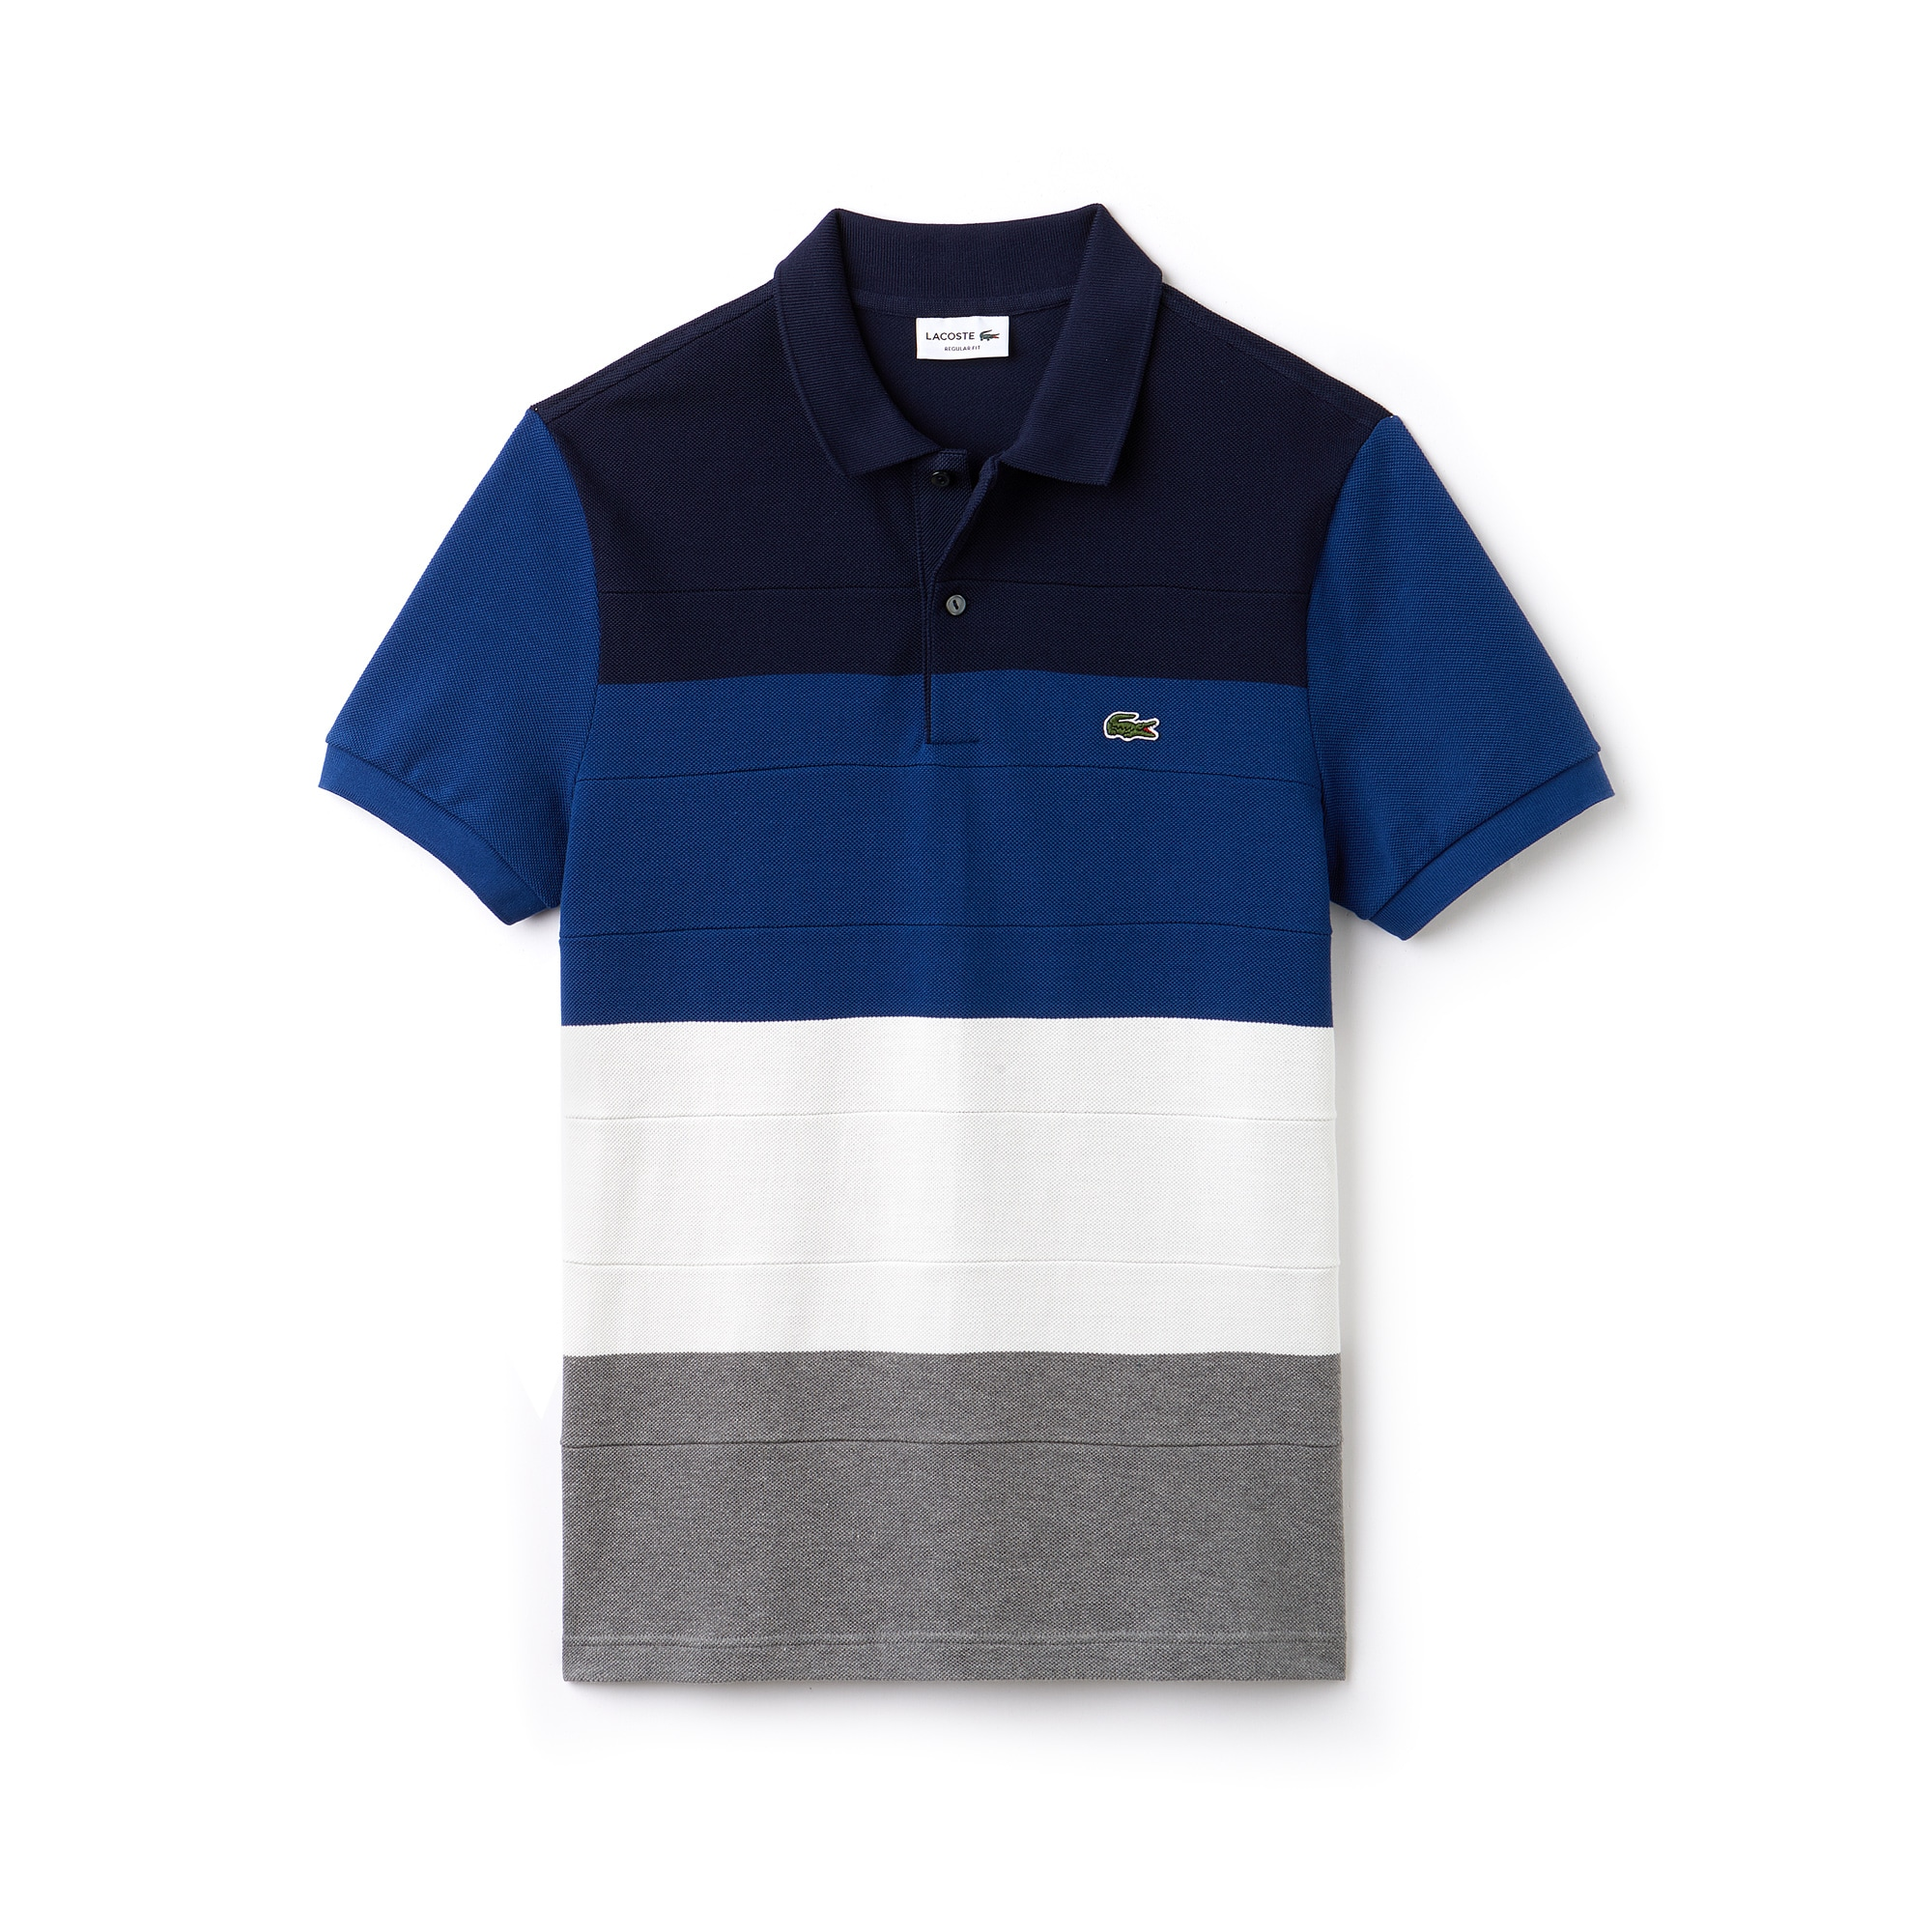 Men's Lacoste Regular Fit Colourblock Cotton Piqué Polo